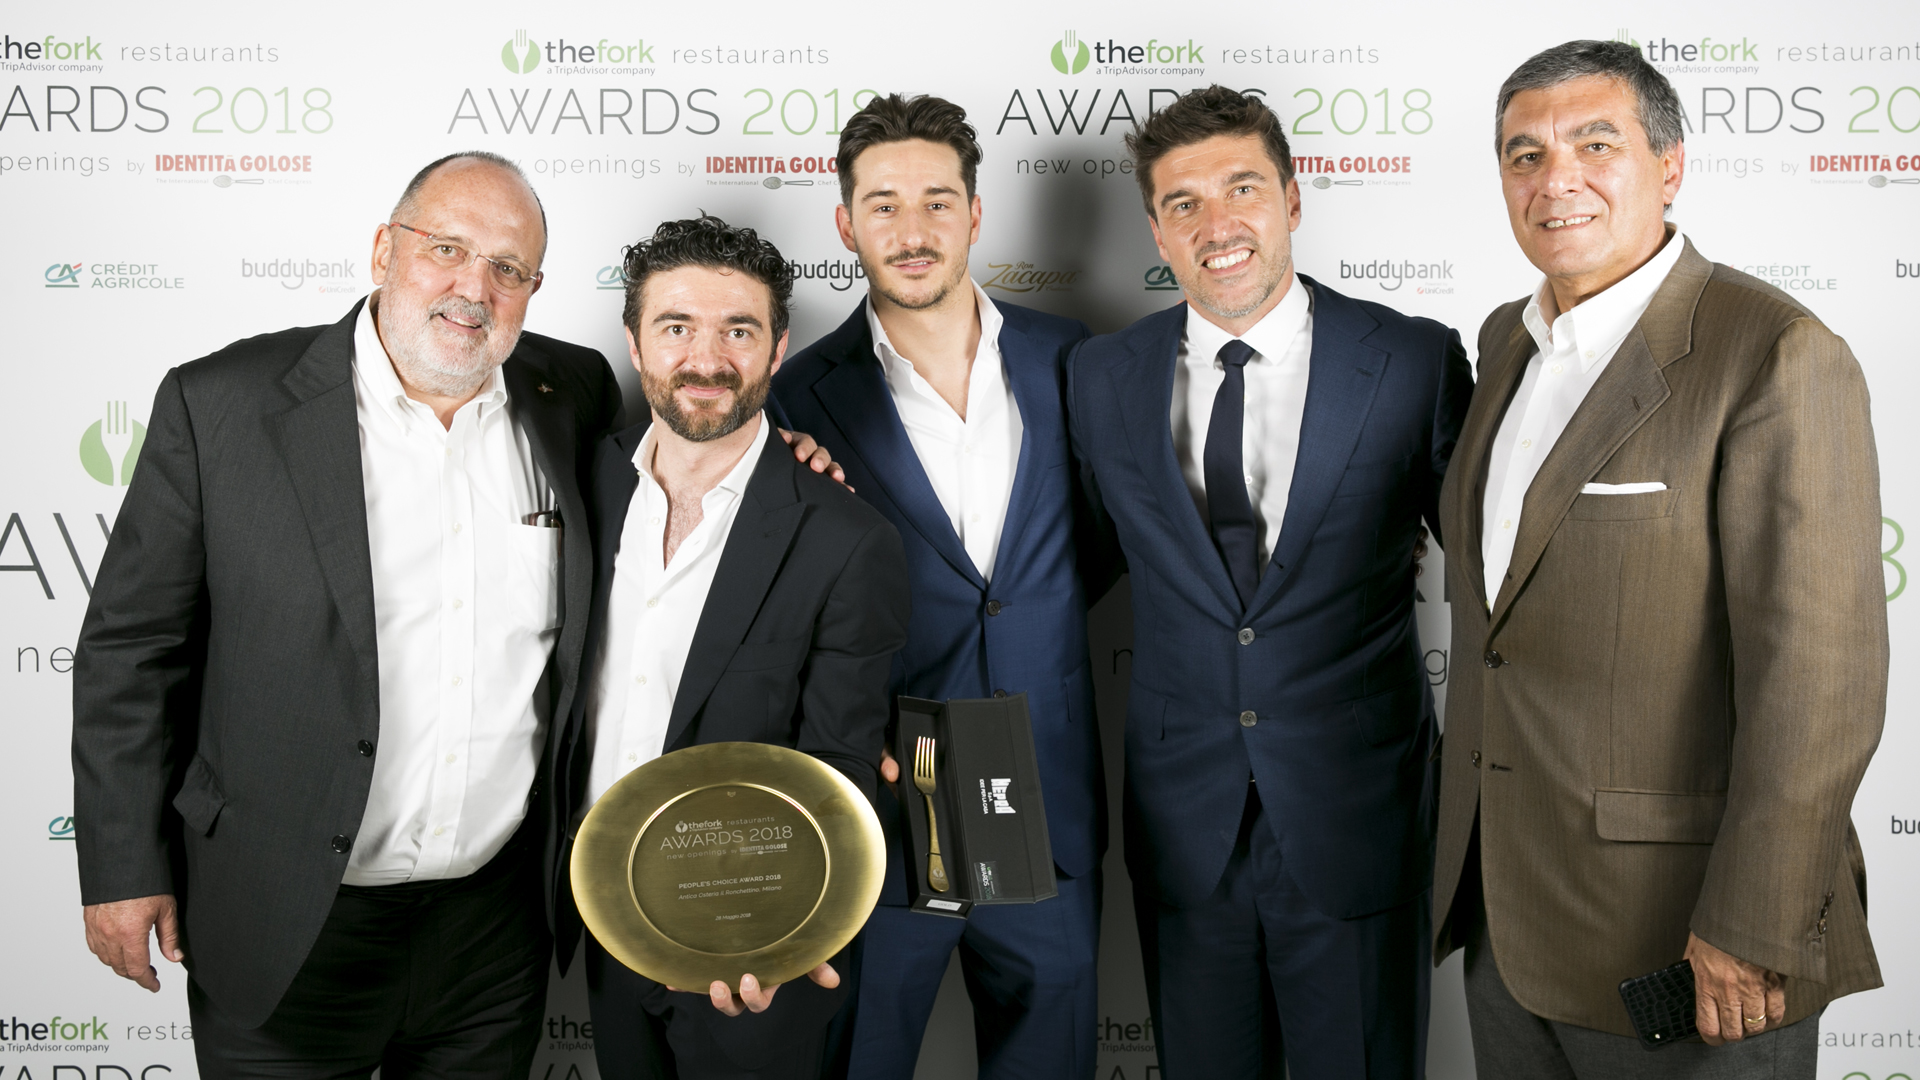 Antica Osteria il Ronchettino vince The Fork Restaurant Awards